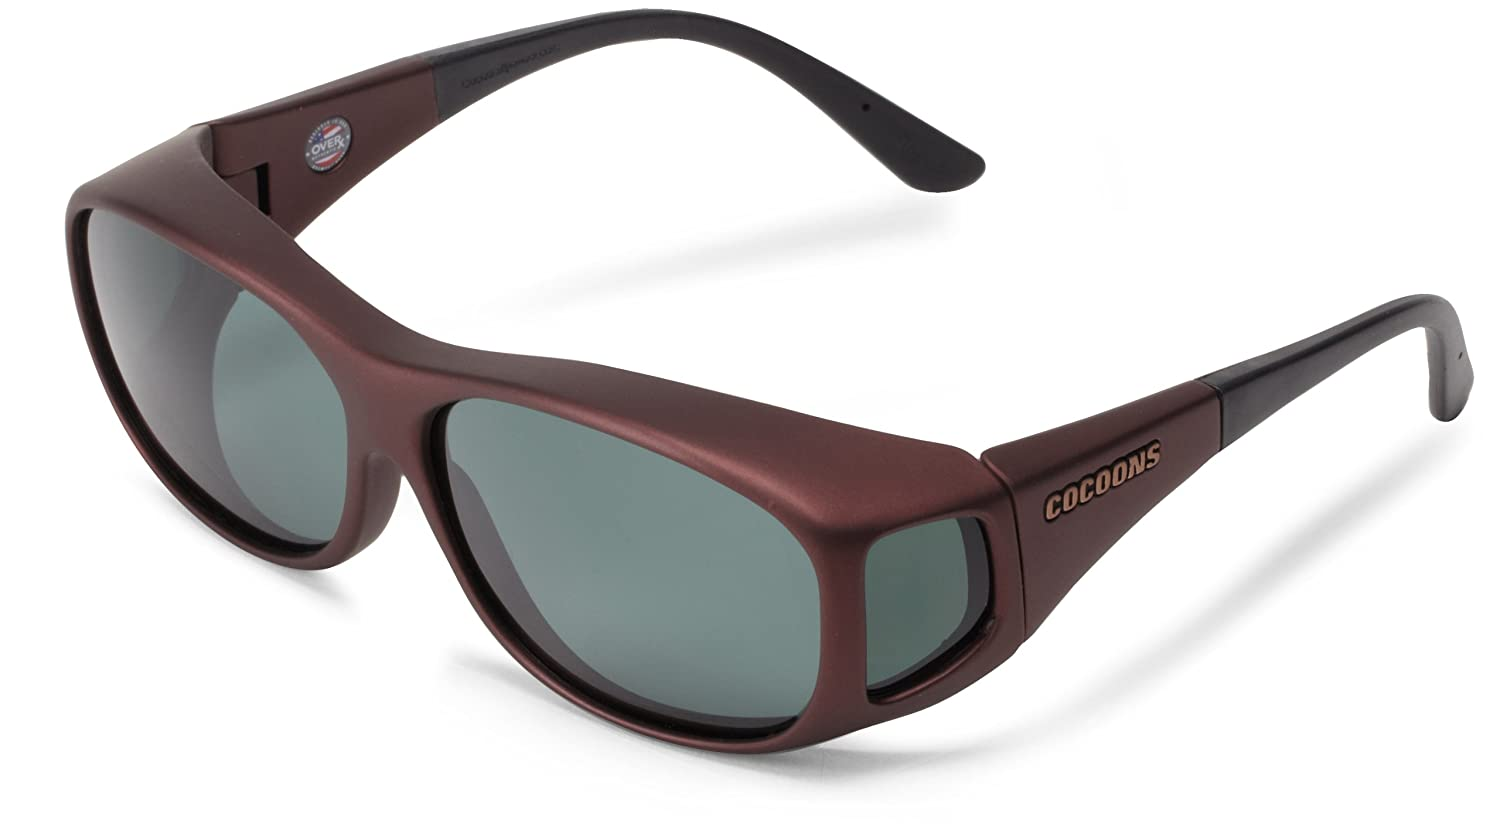 9743a739794 Amazon.com  Cocoons Med-Slim Line C408G Over-Prescription Sunglasses ...